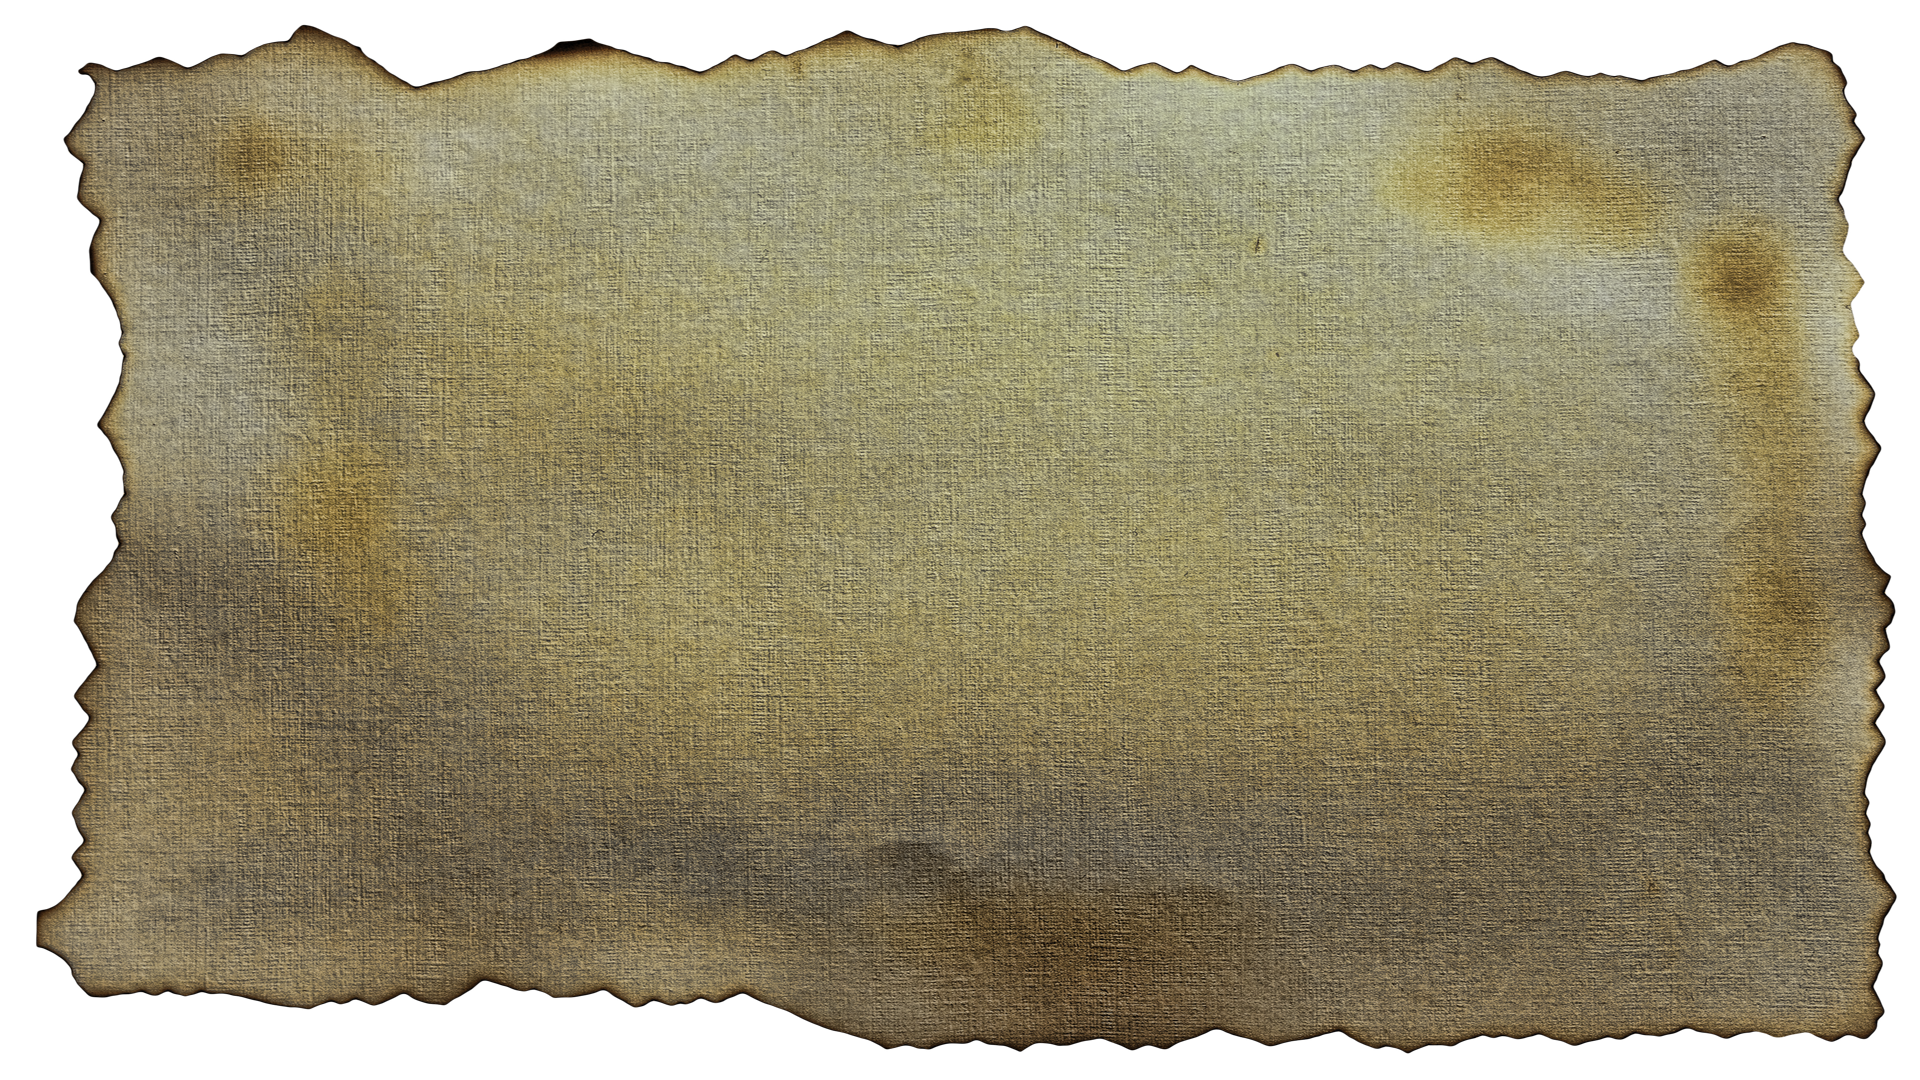 Vintage Burned Paper Background Pattern HD